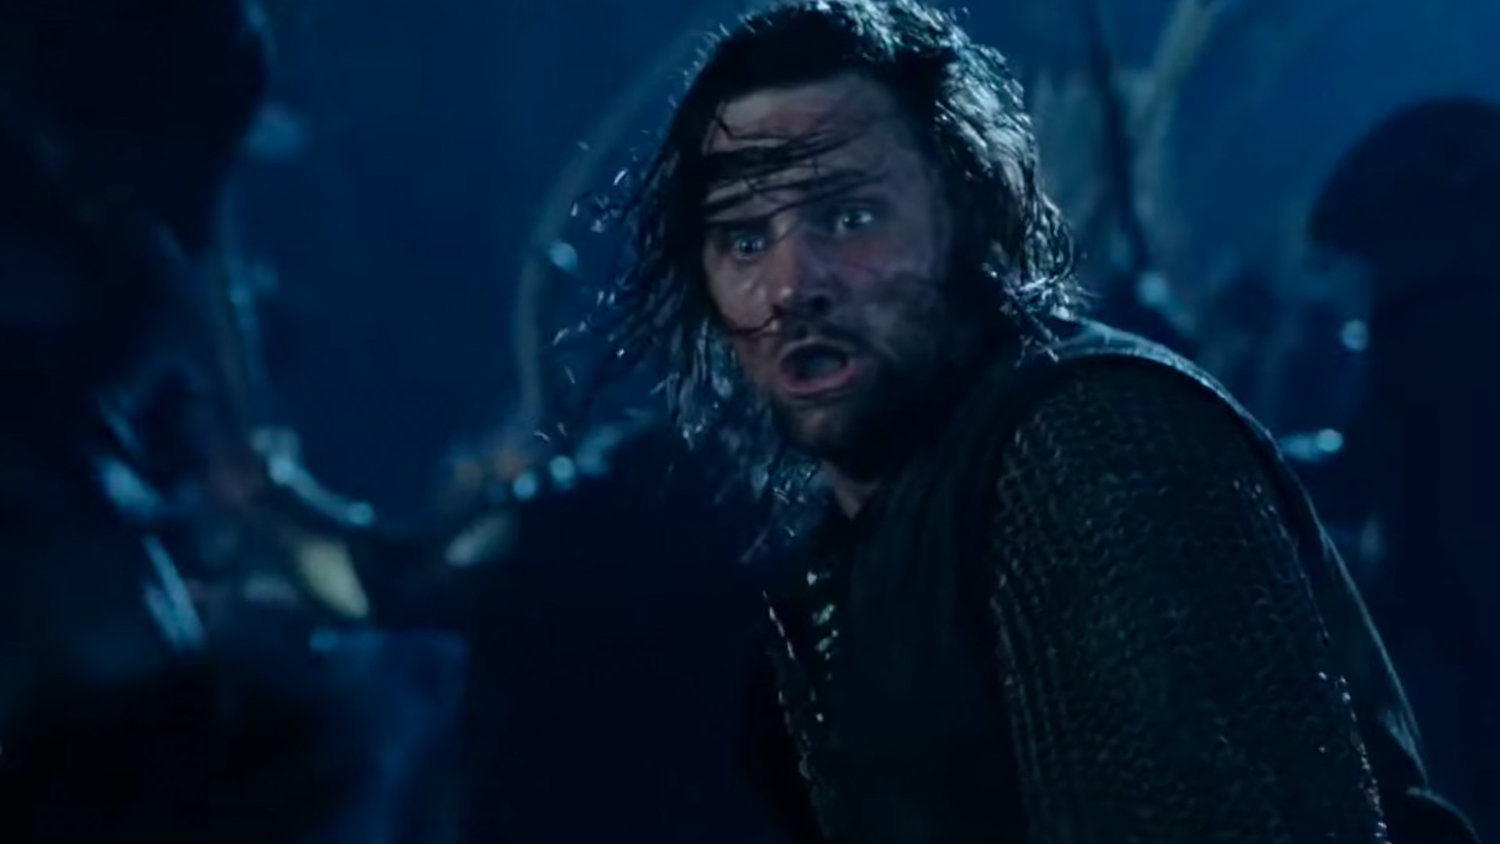 Video Essay Analyzes THE LORD OF THE RINGS' Unforgettable Helm's Deep Battle Scene